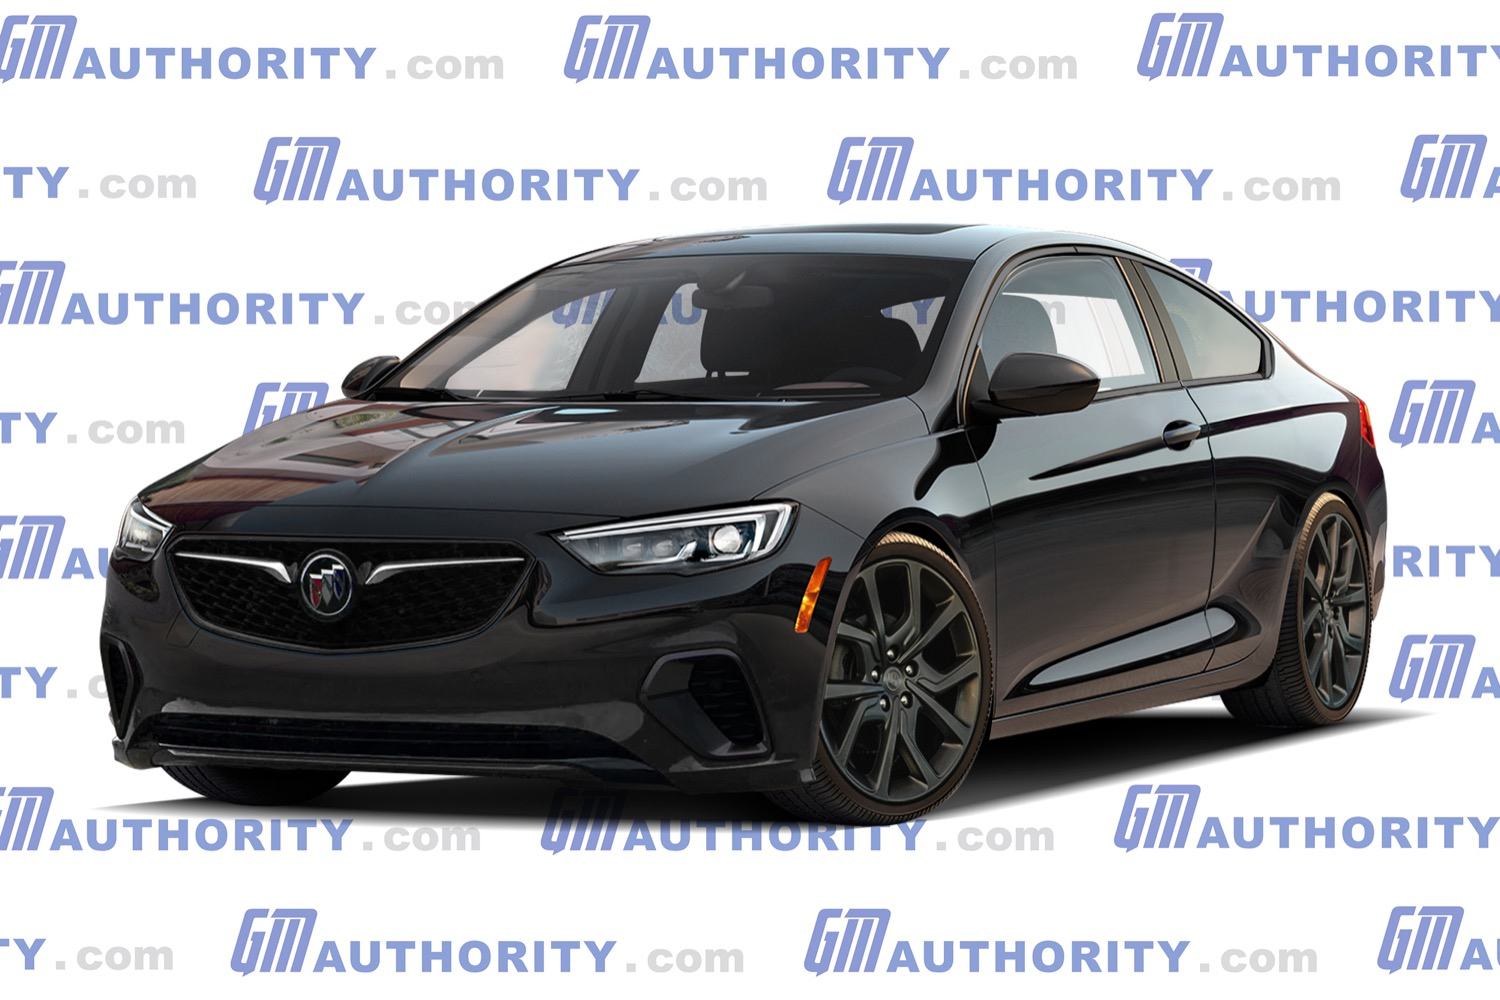 Modern Buick Regal Gnx Rendered | Gm Authority 2022 Buick Regal Gs Performance, Reviews, Awd